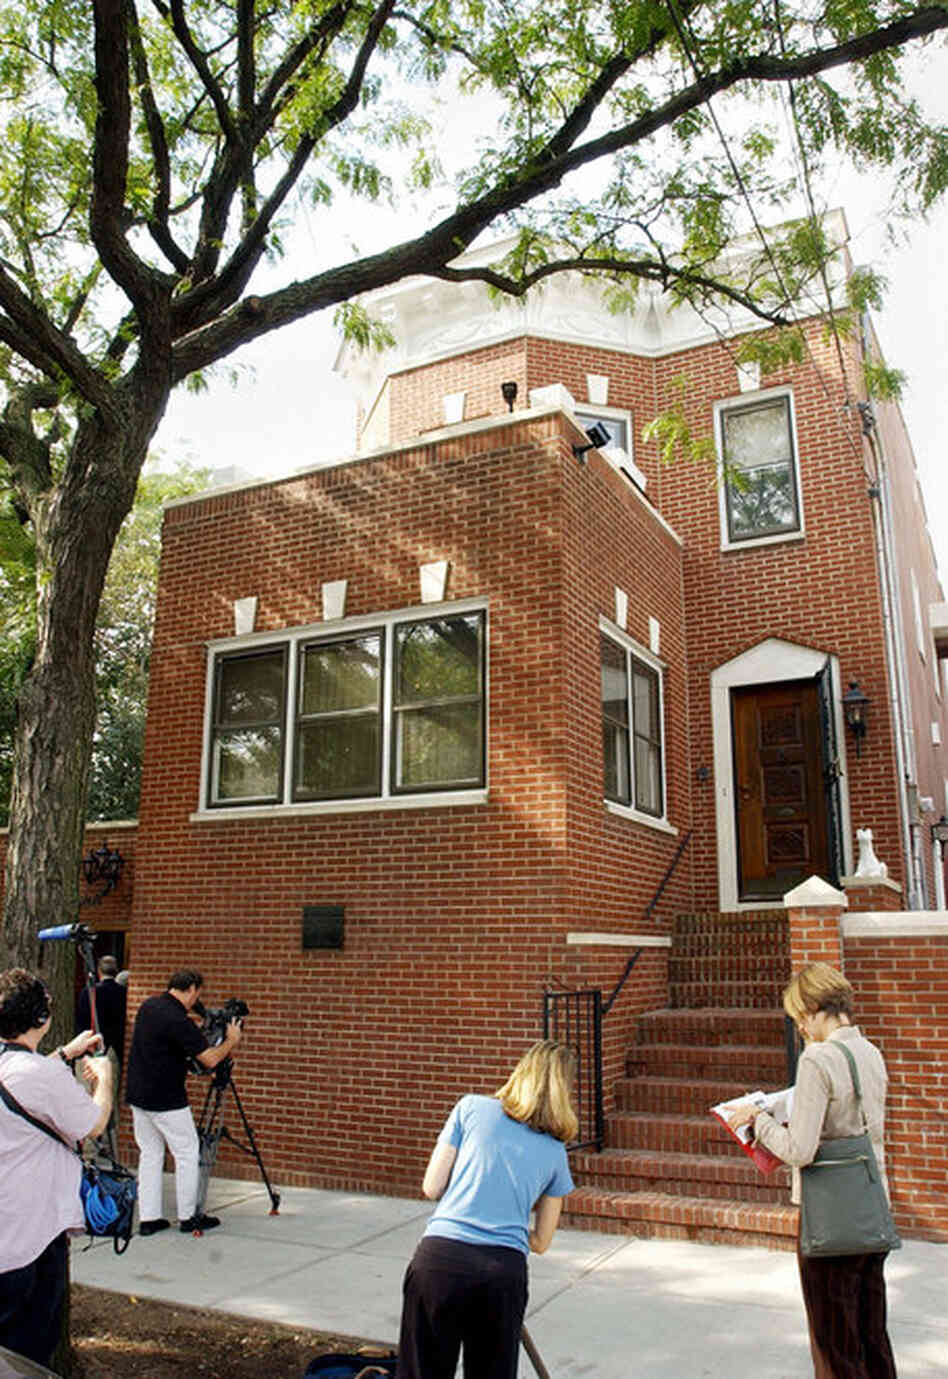 New York City's landmarks board debated whether to offer historic status to jazz legend Louis Armstrong's Queens home because the red-brick residenc